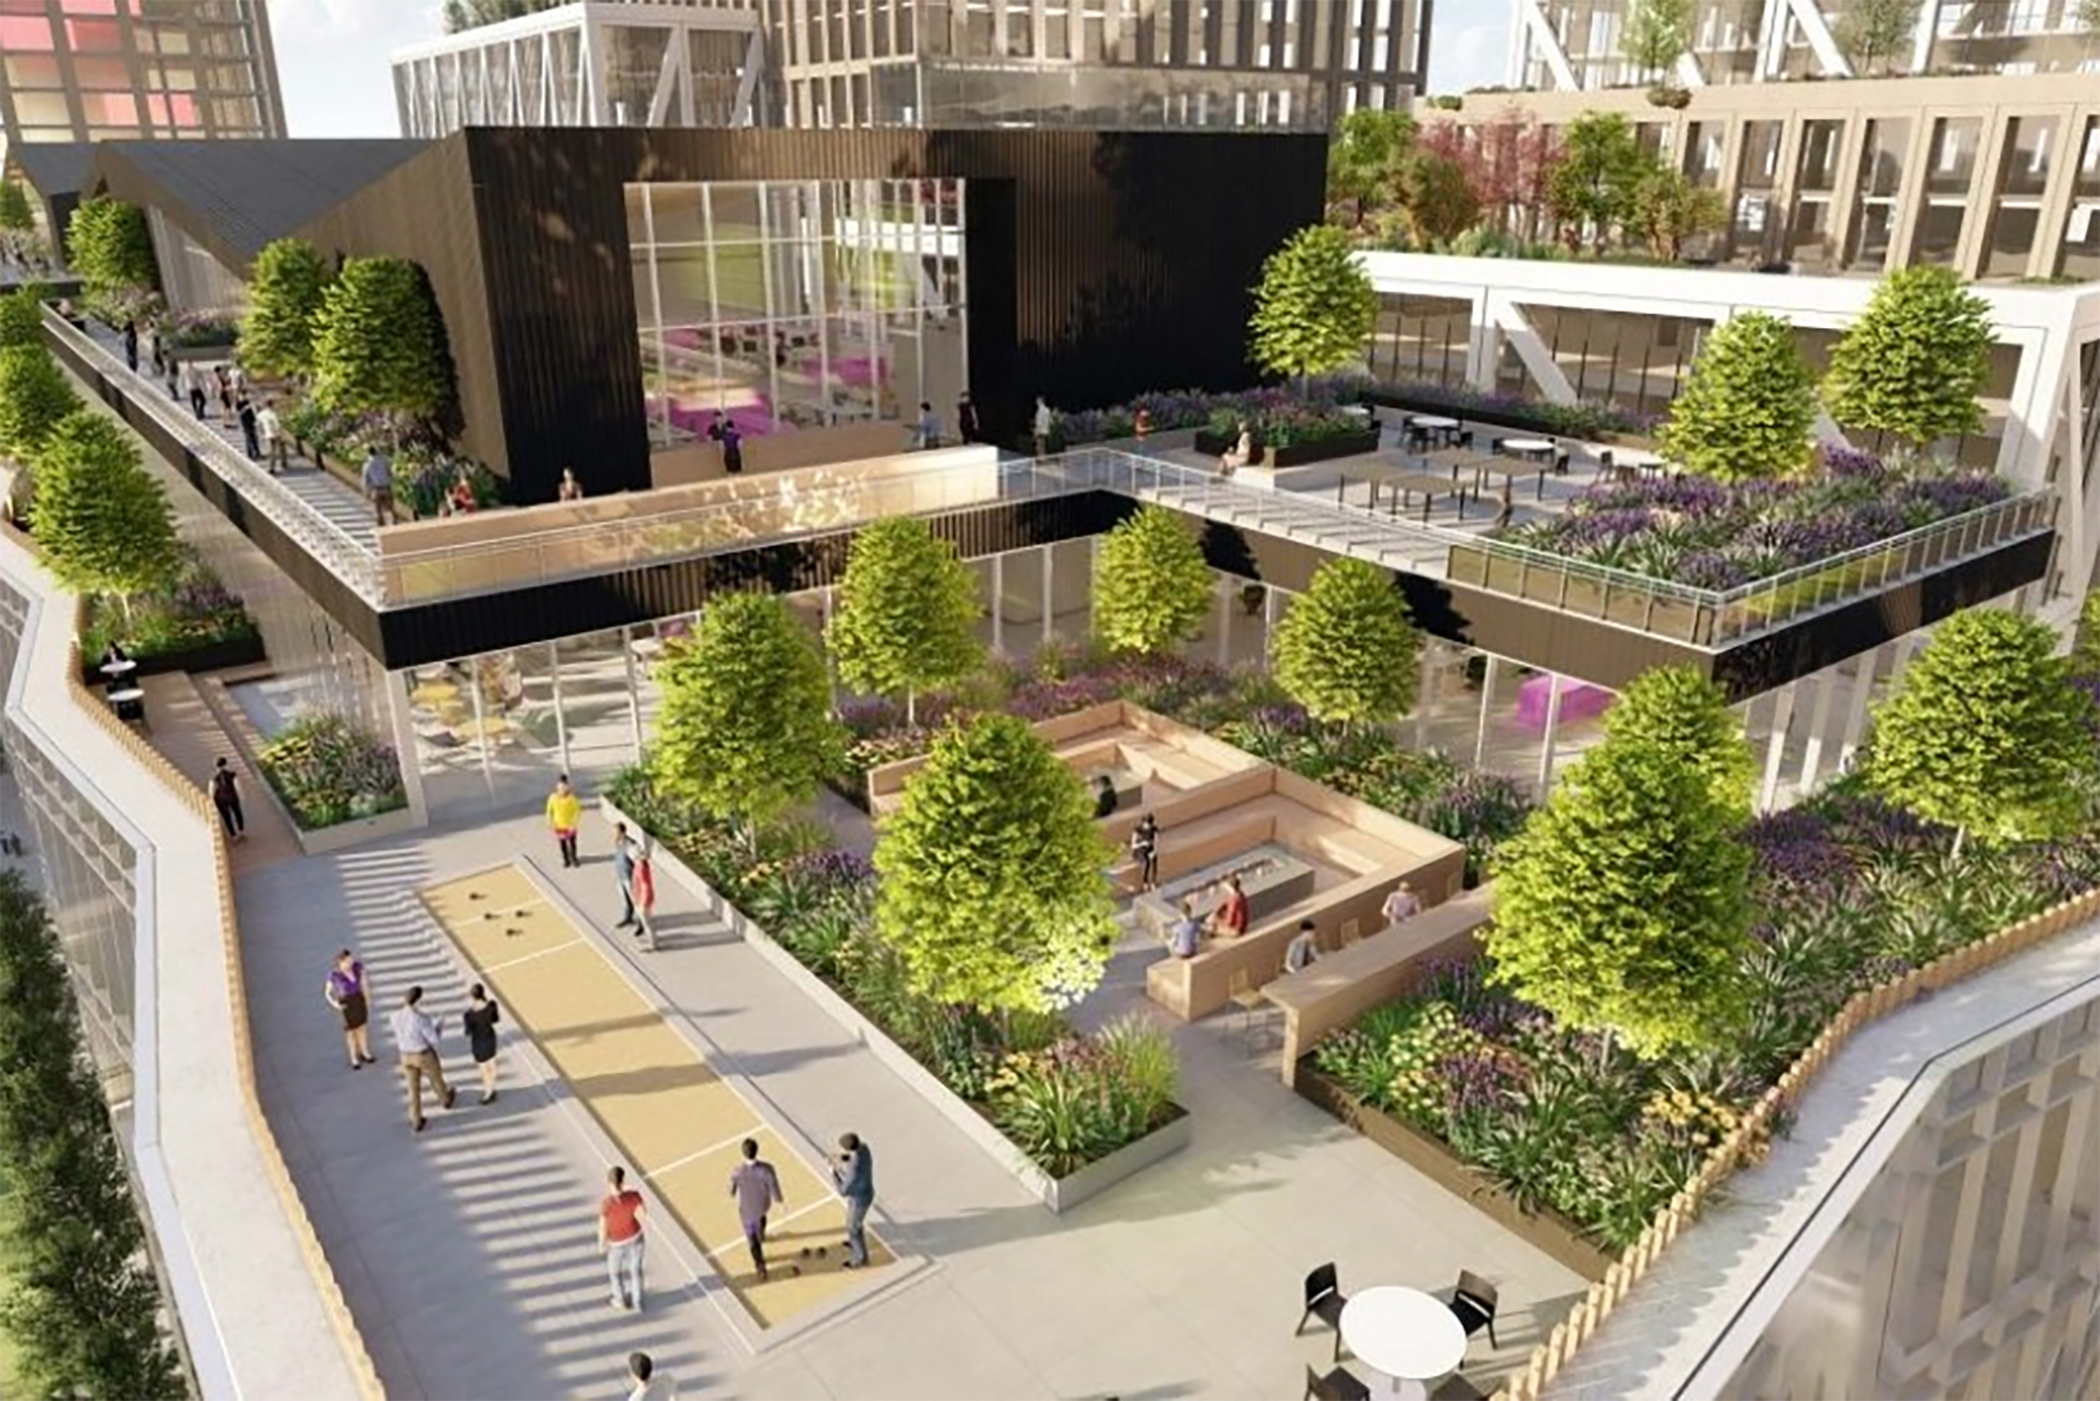 Kilroy Realty's Flower Mart project is one of three the San Francisco Planning Commission approved this year. (CoStar)